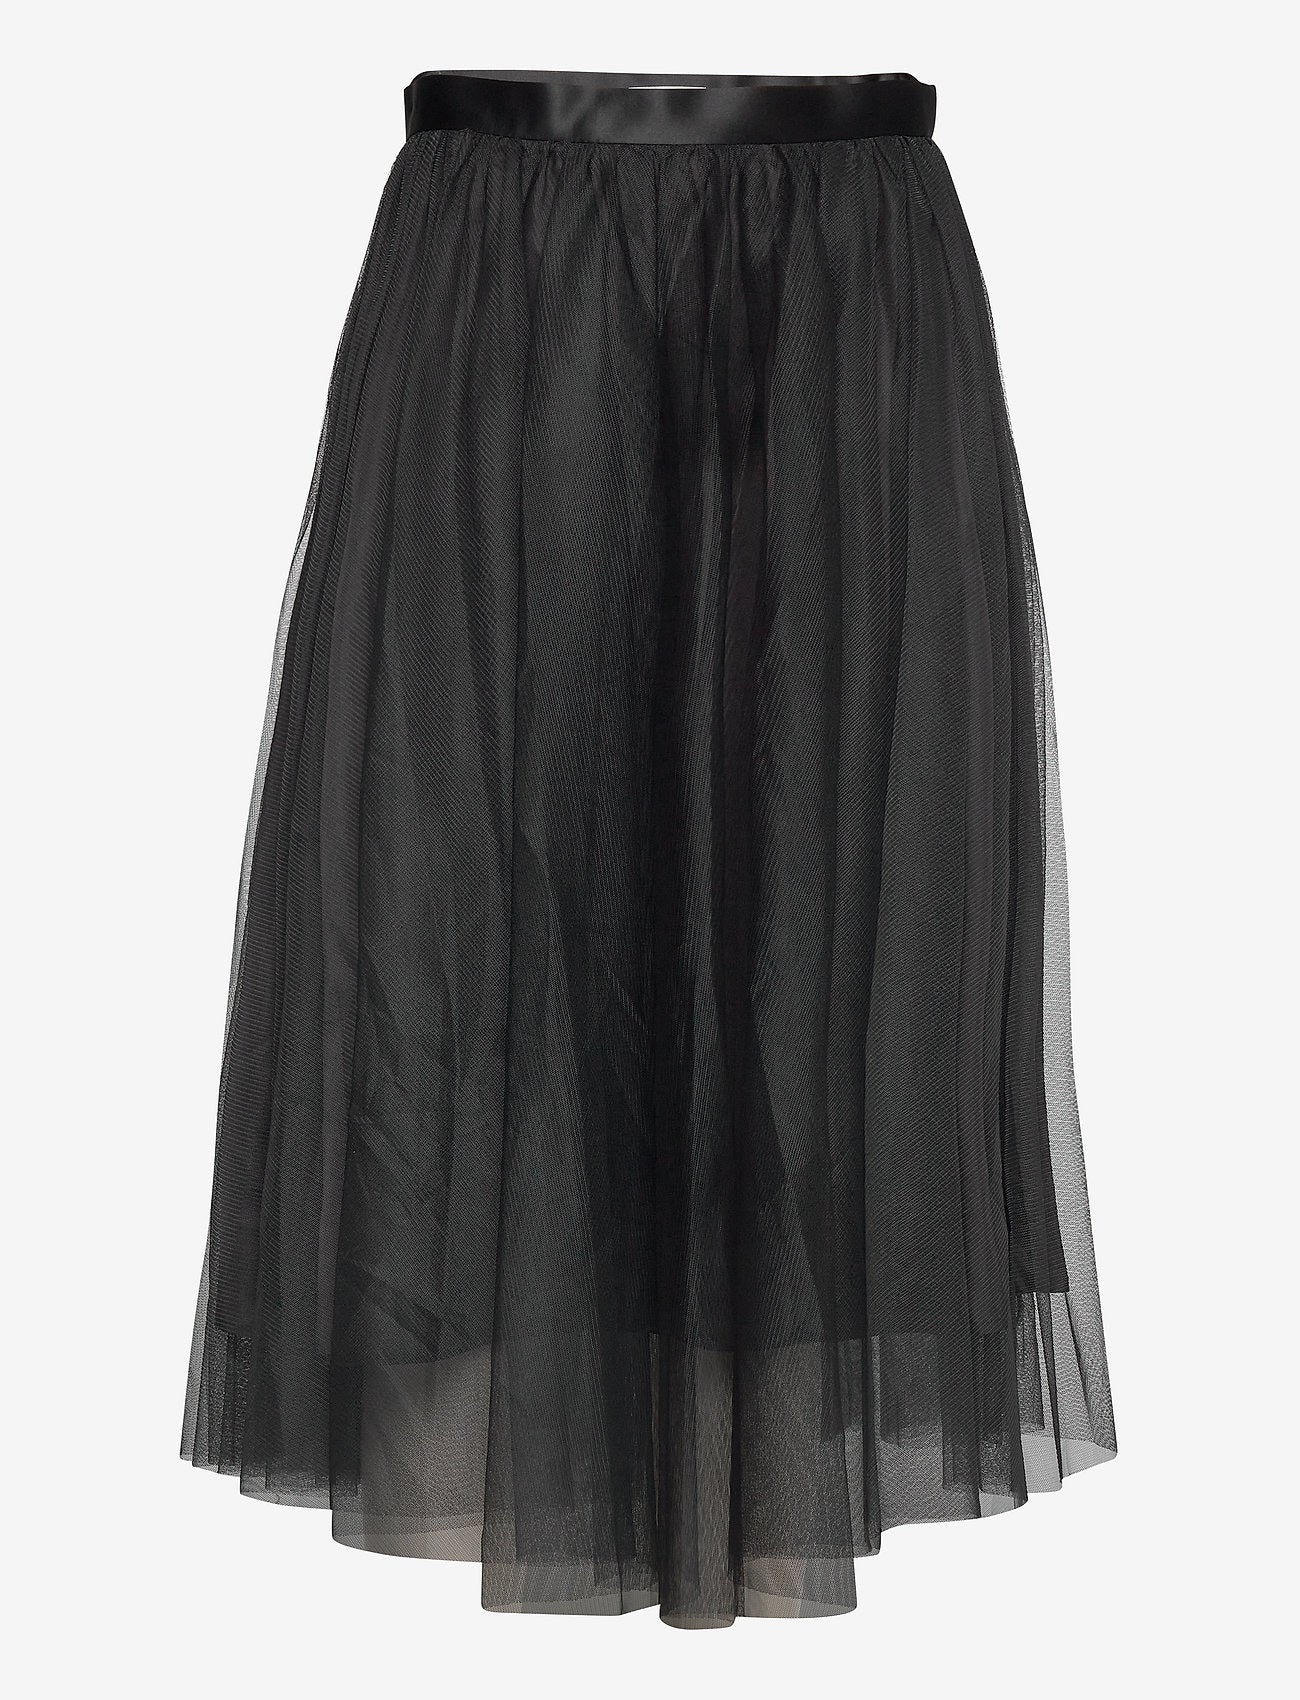 Flawless Skirt 02 Soft Tulle